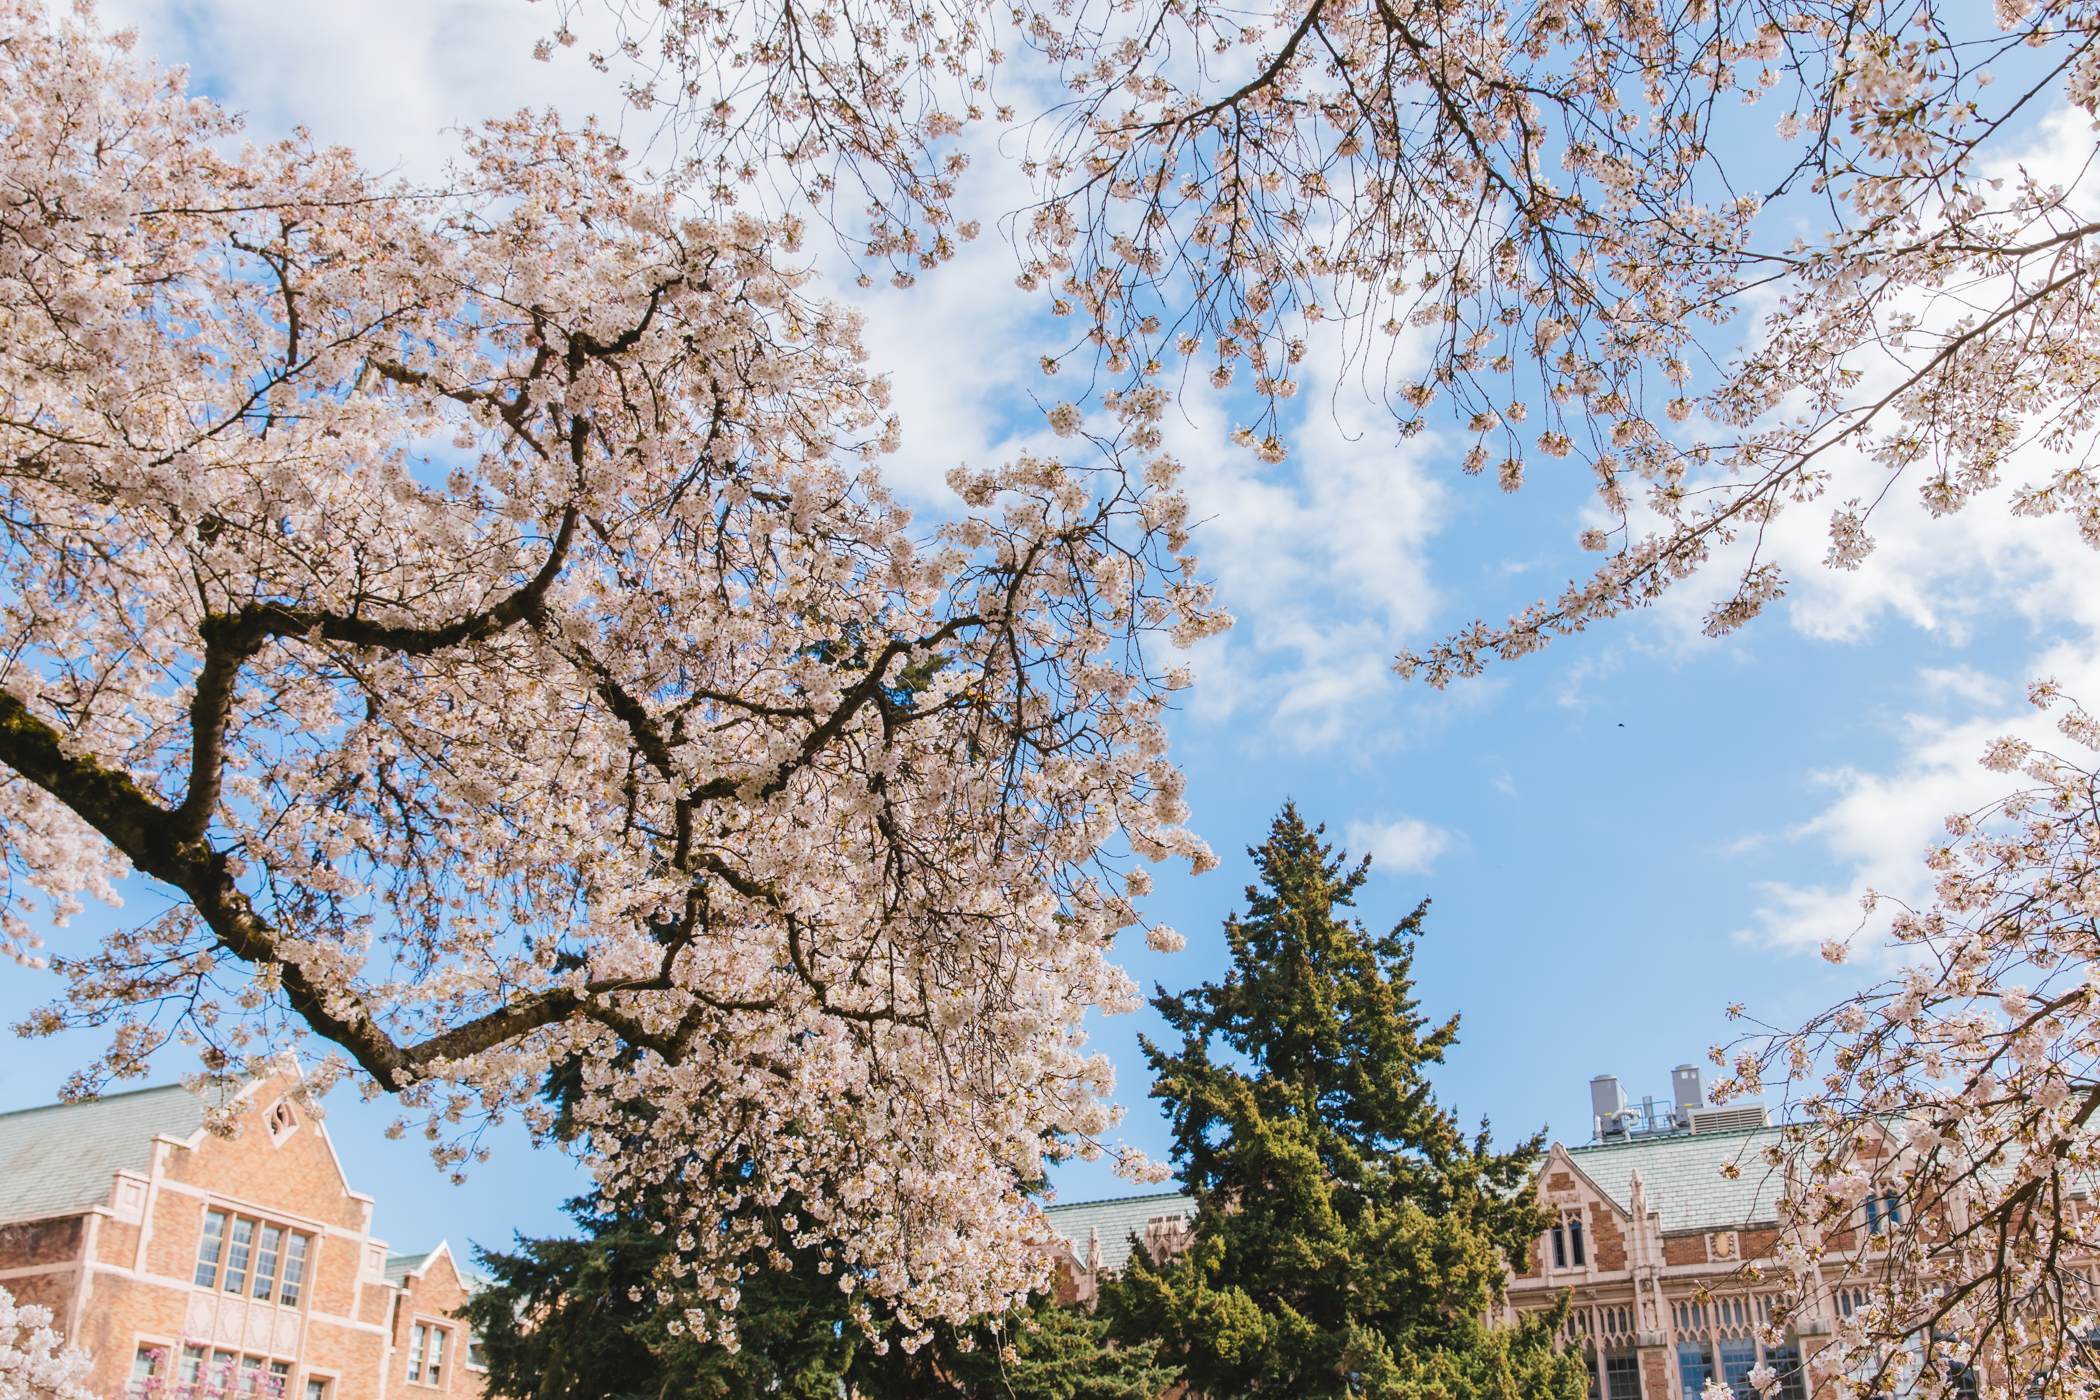 "The cherry blossoms at the University of Washington quad are an annual tradition that so many love and enjoy. This year, the UW is asking folks not to visit in-person because of the pandemic, and instead have a{&nbsp;}<a  href=""https://www.washington.edu/video/campus-webcams/"" target=""_blank"" title=""https://www.washington.edu/video/campus-webcams/"">livestream</a>{&nbsp;}up. In our capacity as a news-related outlet, we were able to send a photographer out to quickly and safely get some shots of the blossoms in all their glory. Because we all still deserve to at least have them gracing our screens, if an in-person experience can't be possible! (Image: Sunita Martini / Seattle Refined){&nbsp;}"